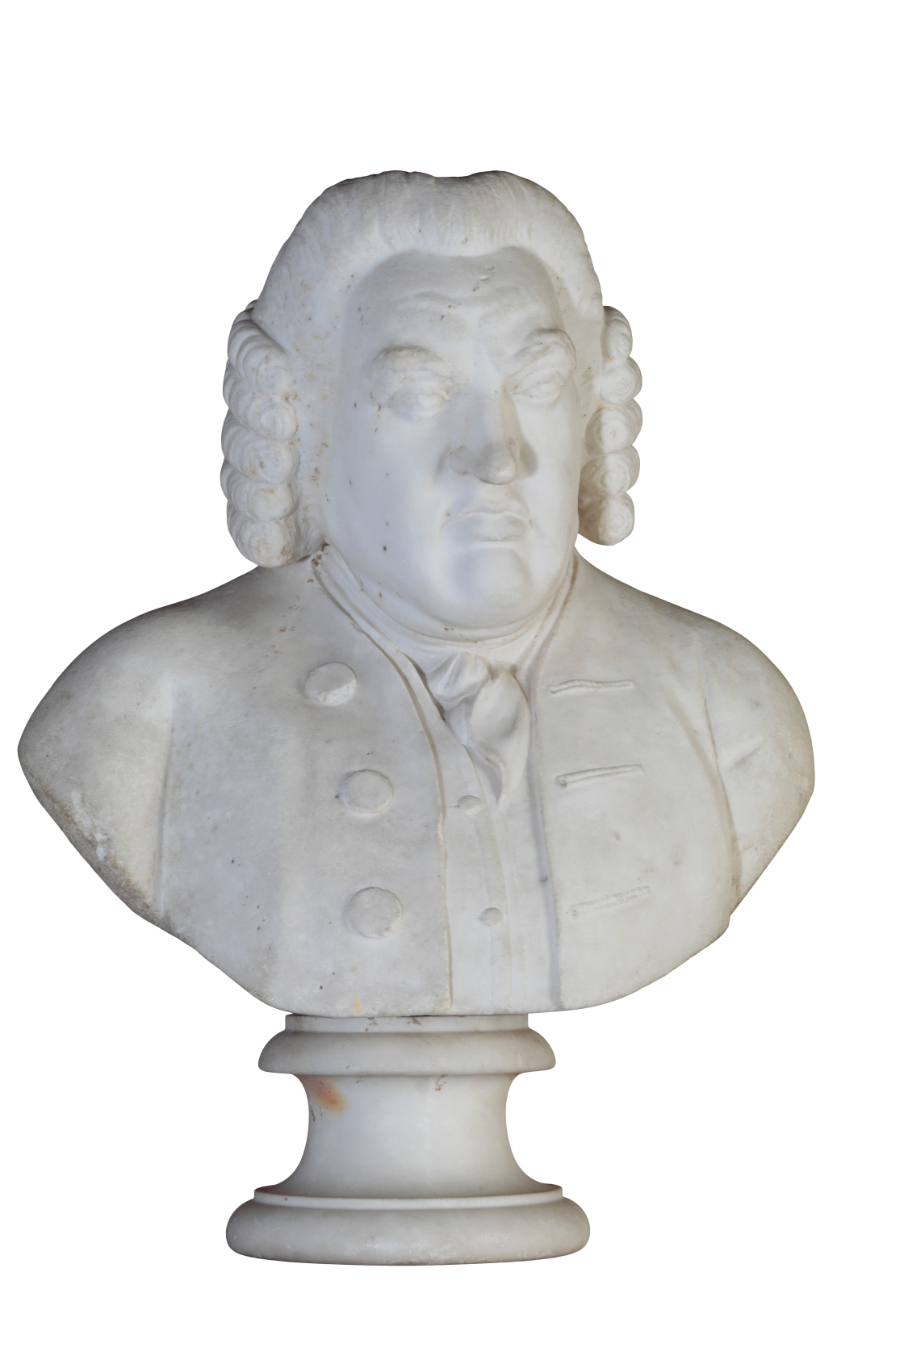 A SCULPTED WHITE MARBLE BUST OF DR SAMUEL JOHNSON, - Image 2 of 2